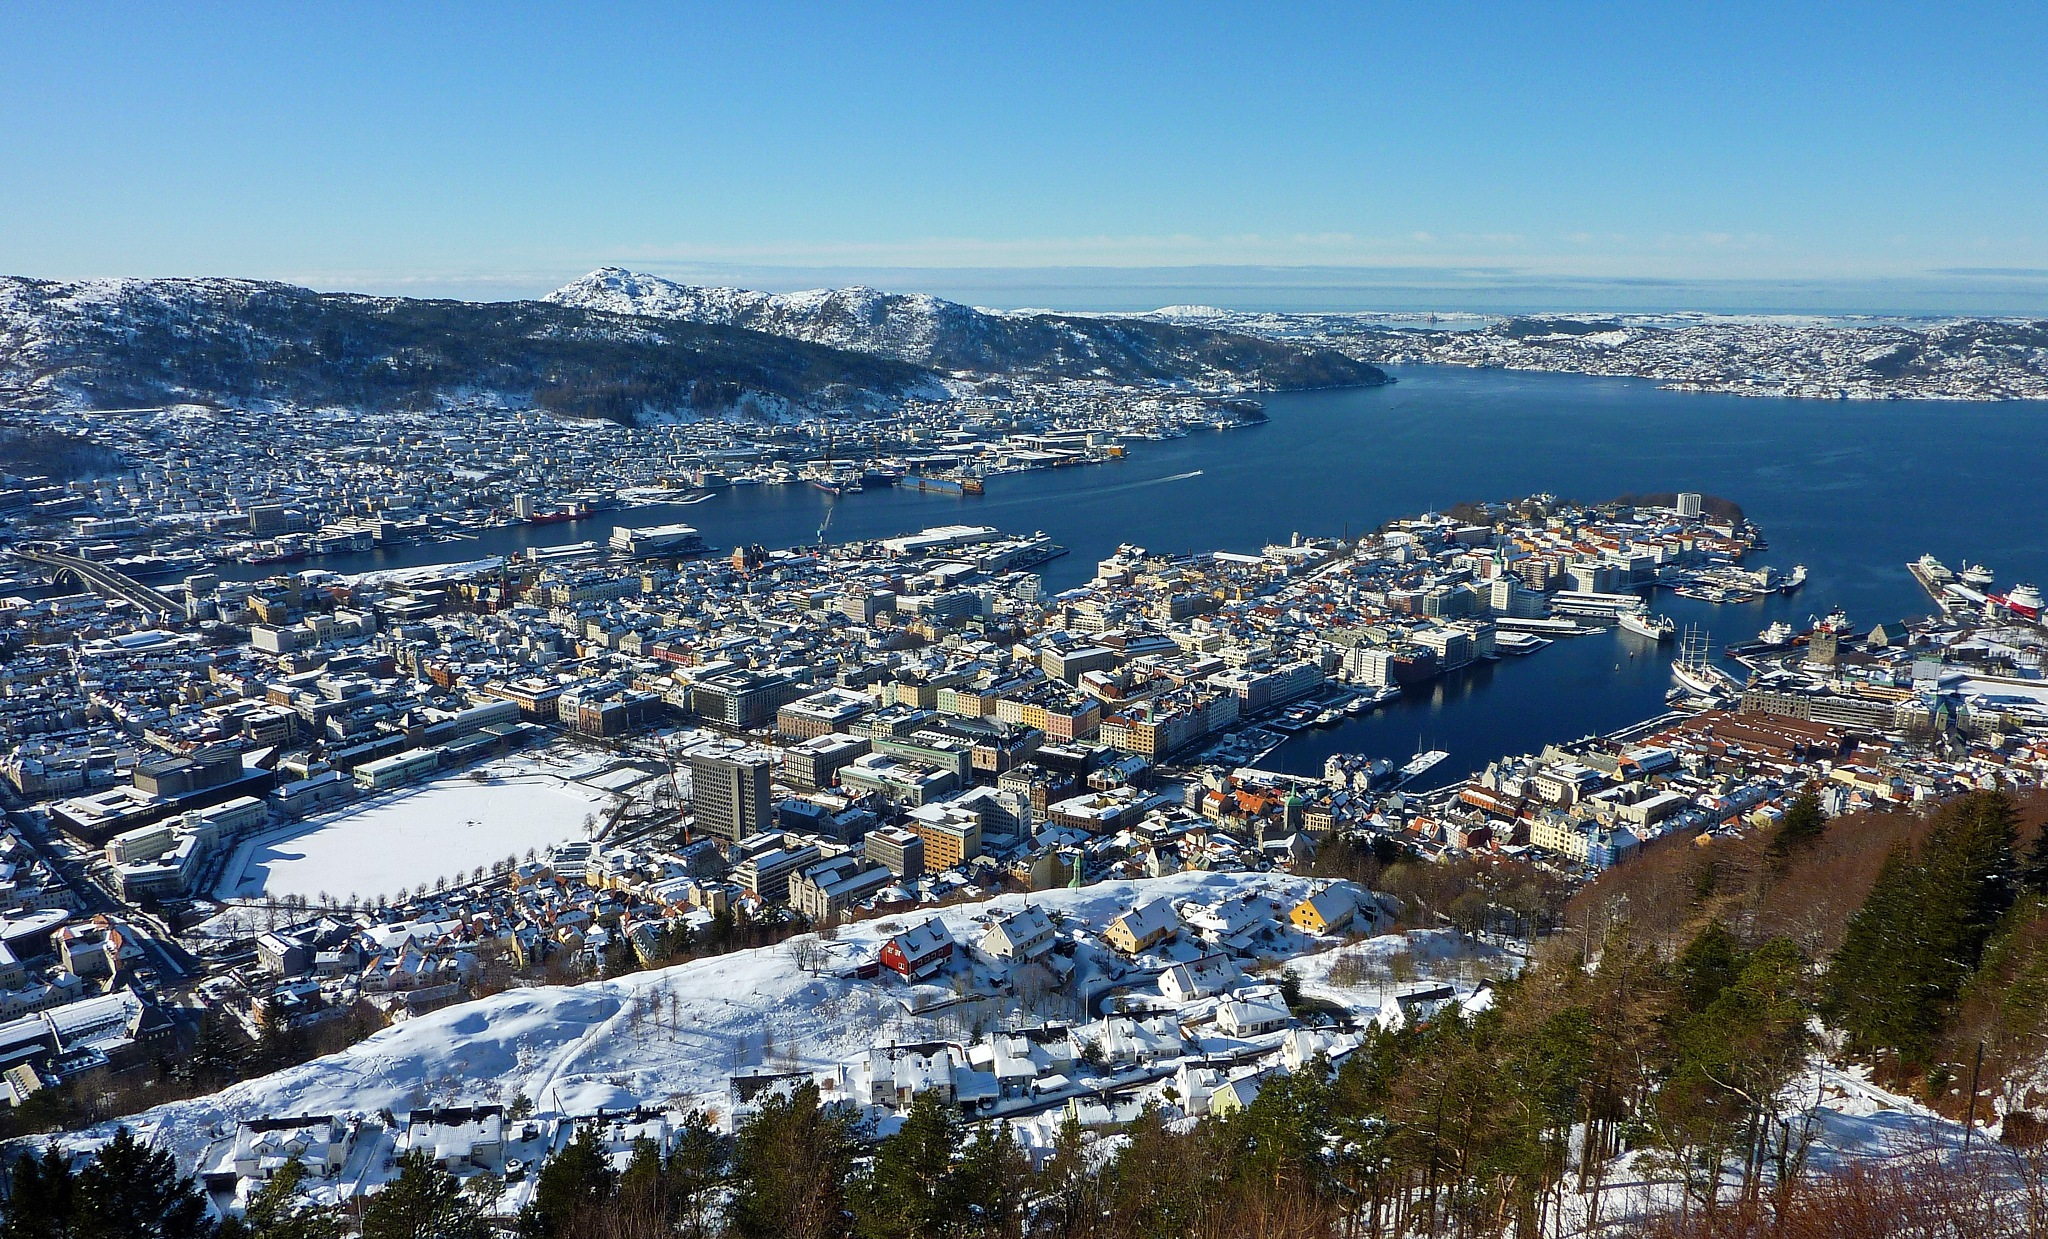 View of Bergen down town. North Sea in the background. by Per Molvik